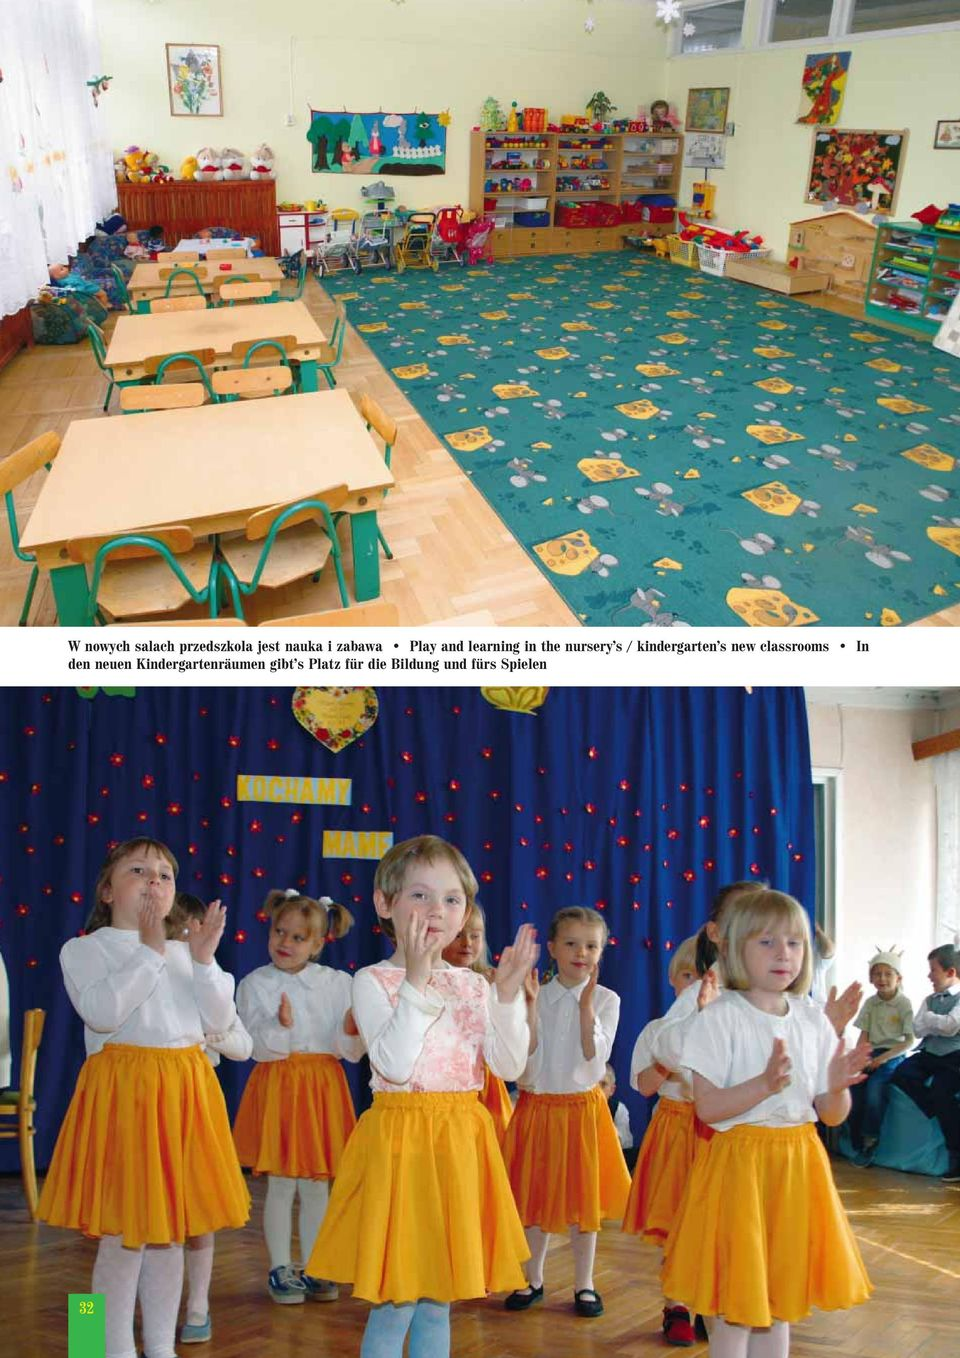 kindergarten s new classrooms In den neuen